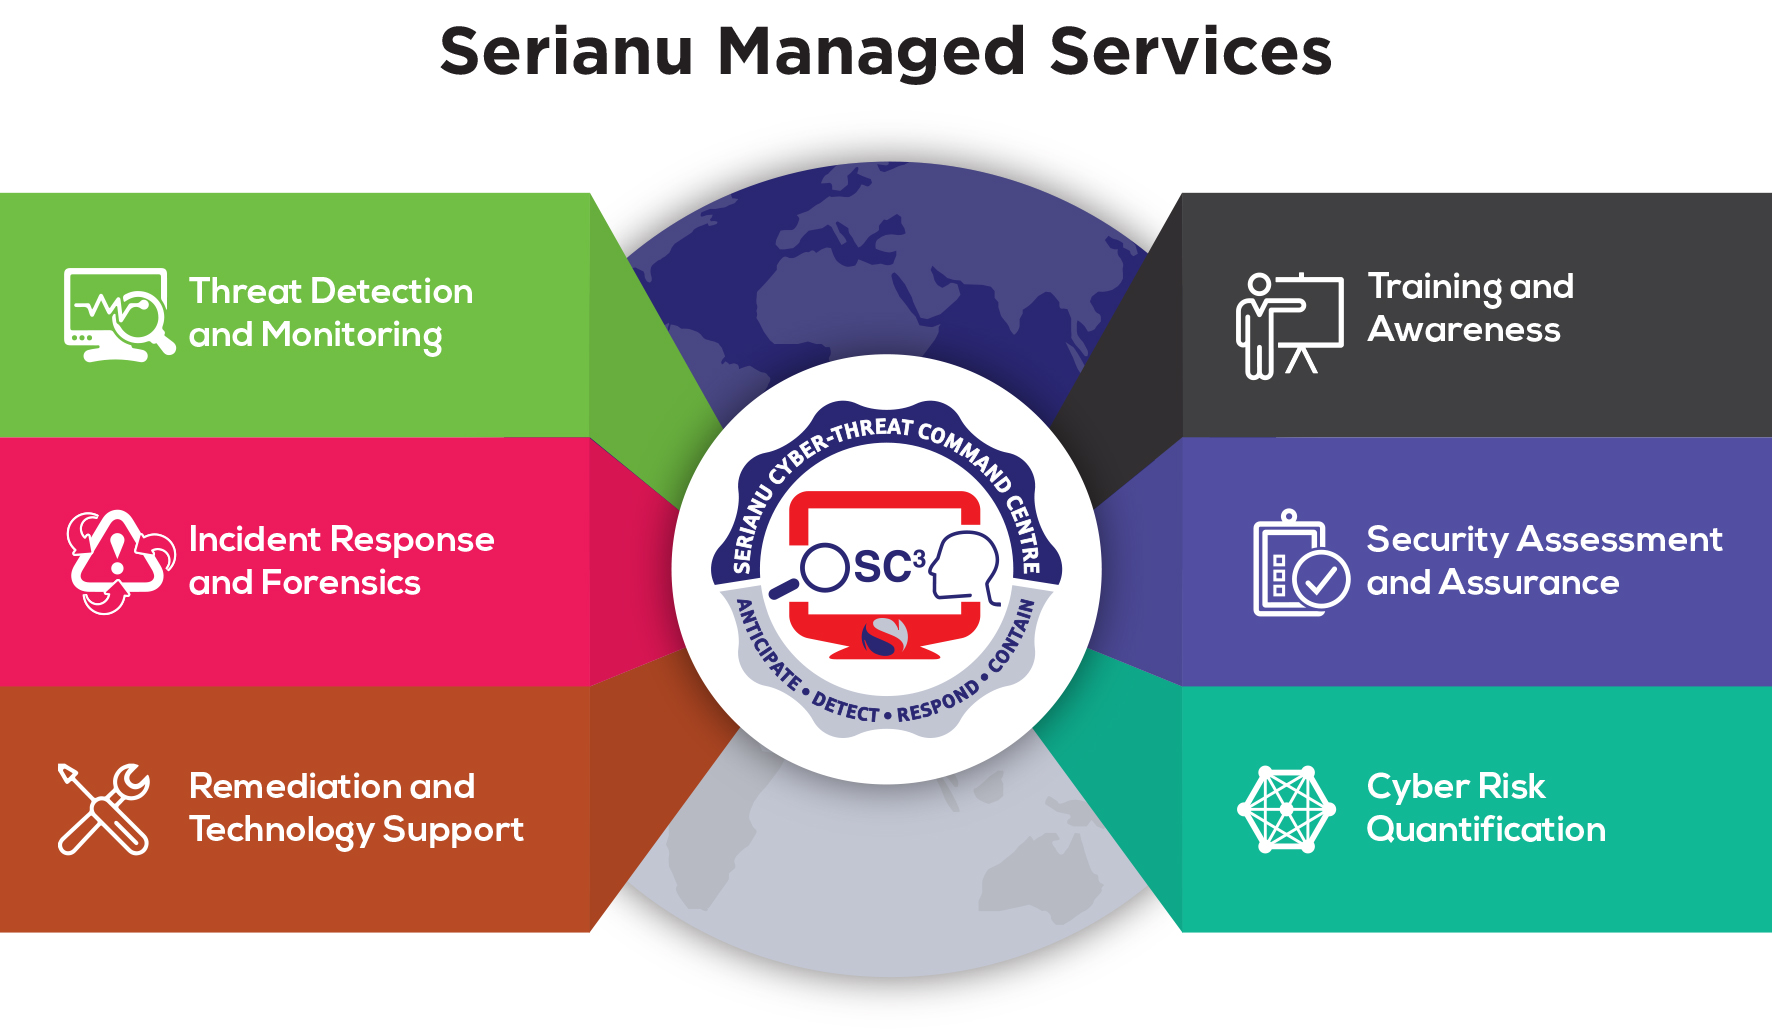 Serianu Managed Services